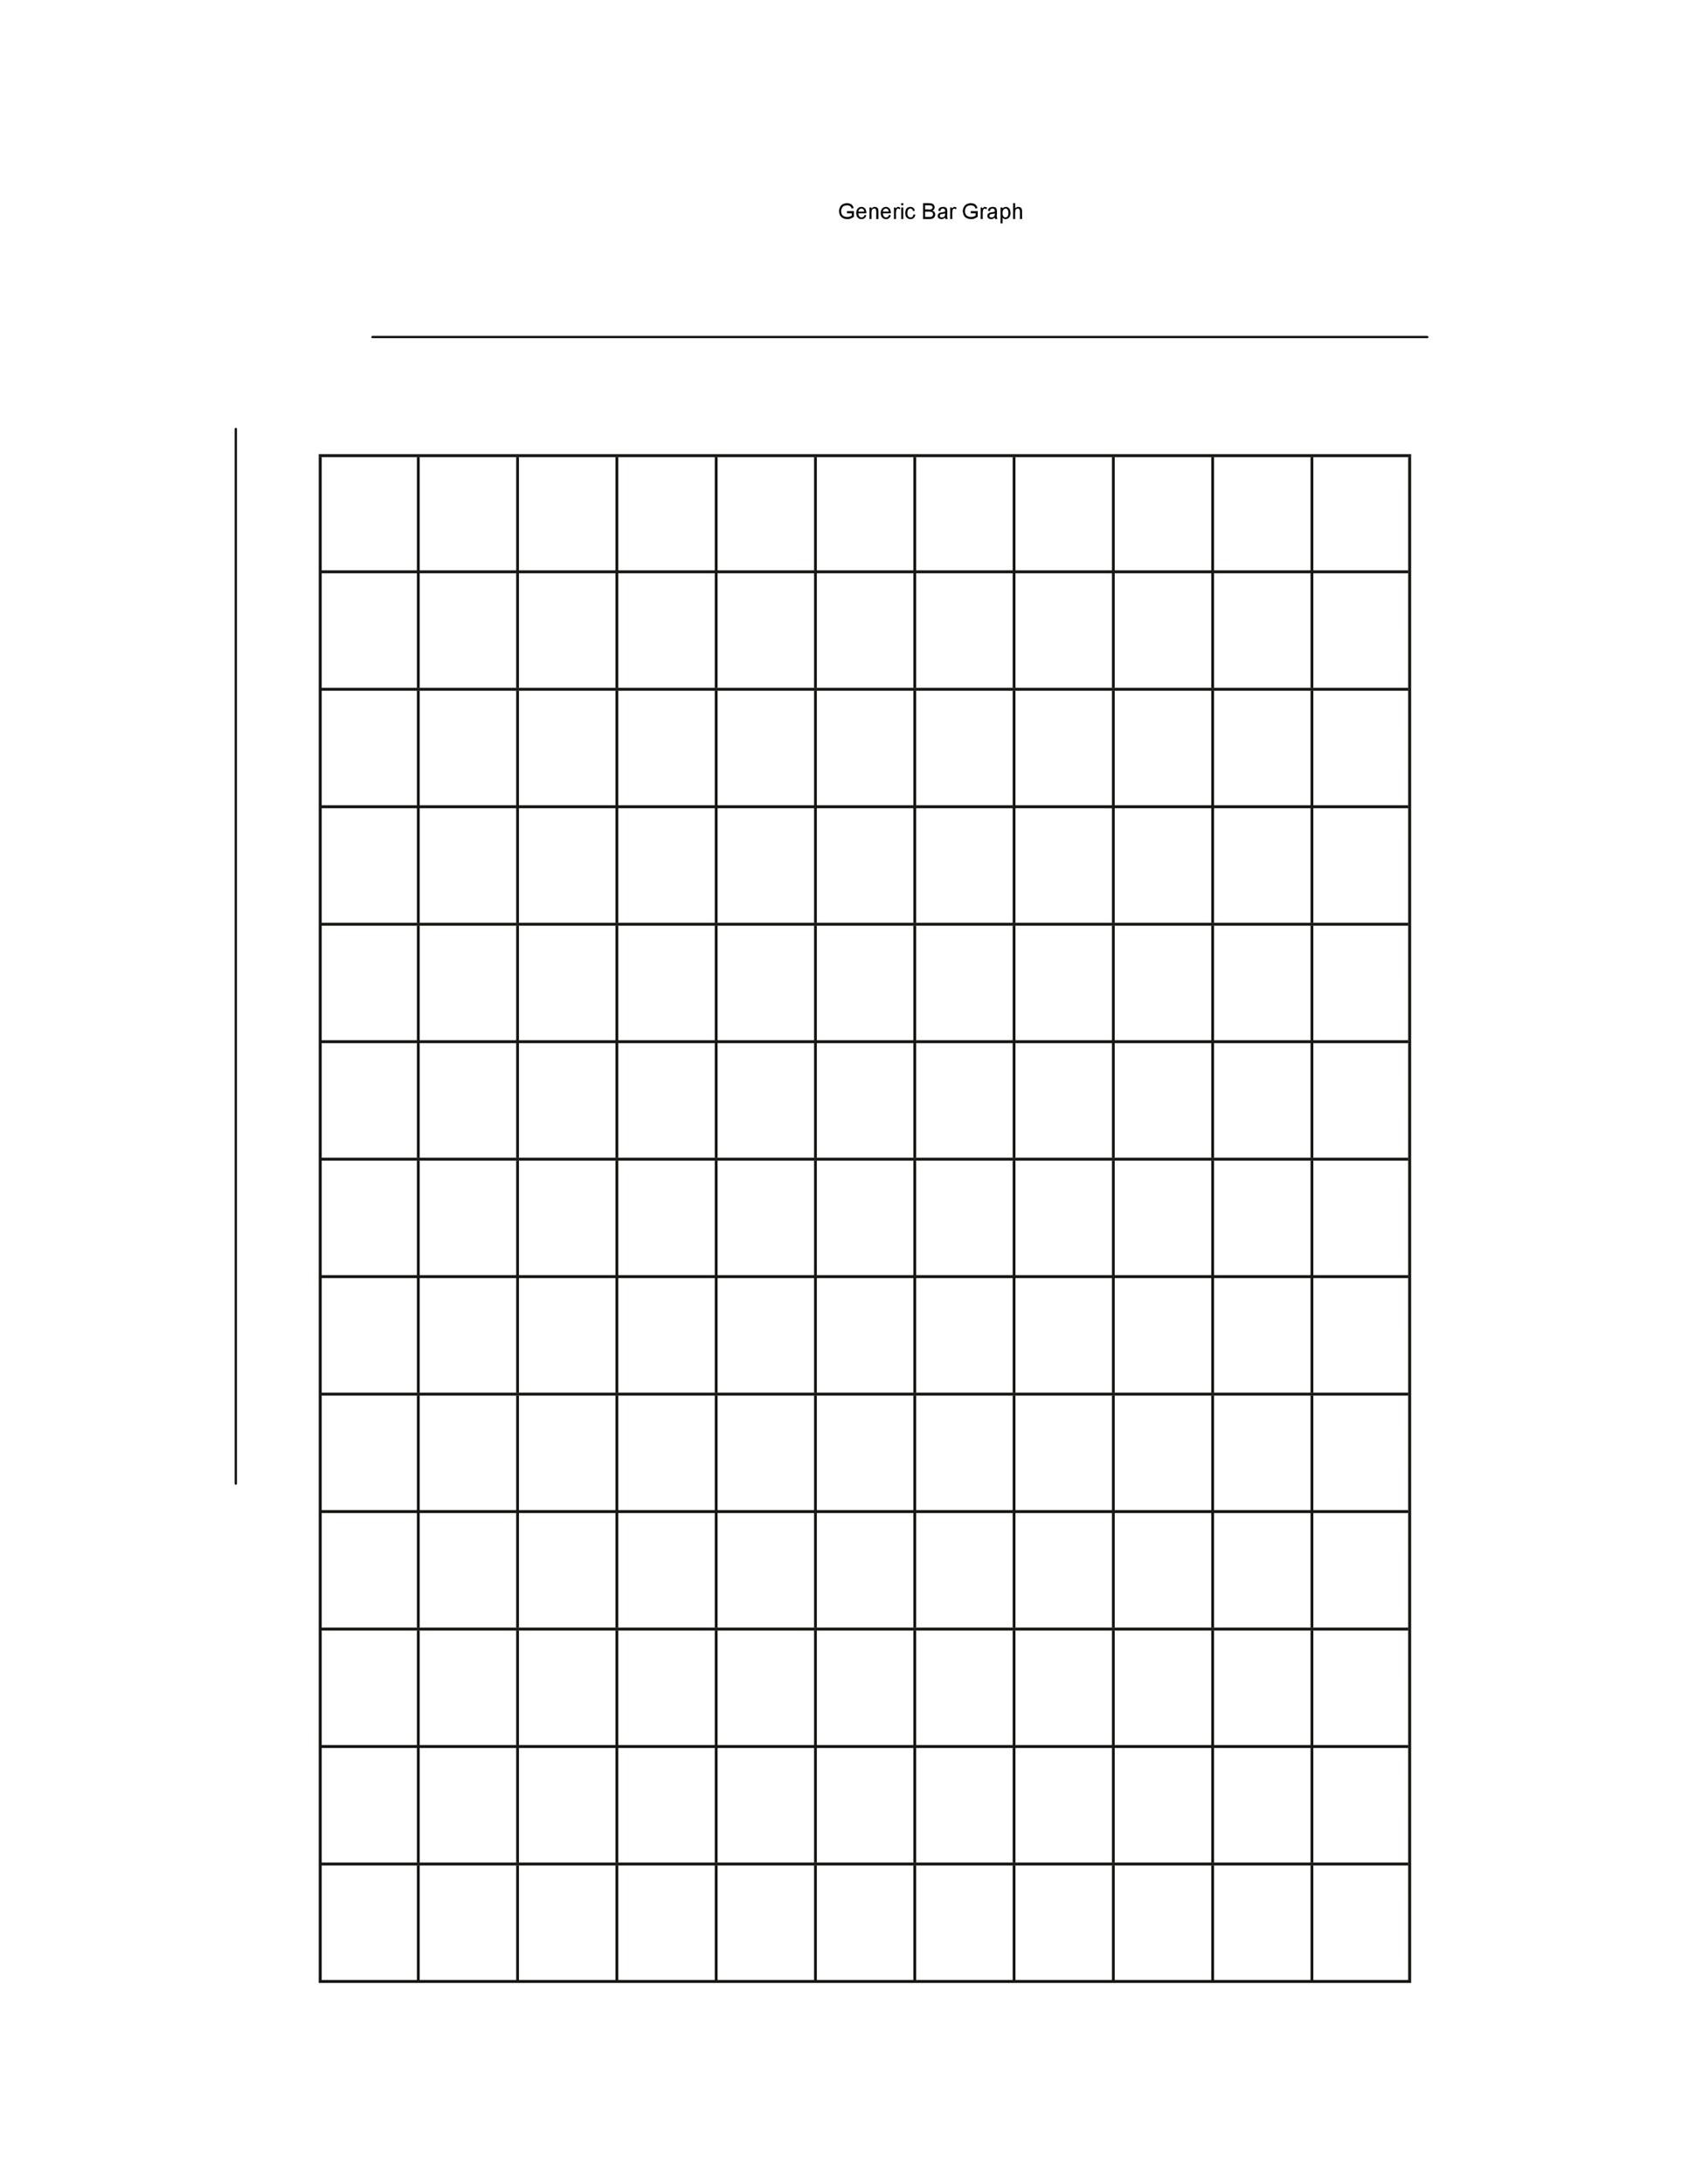 photograph about Printable Bar Graph Template titled 41 Blank Bar Graph Templates [Bar Graph Worksheets] ᐅ